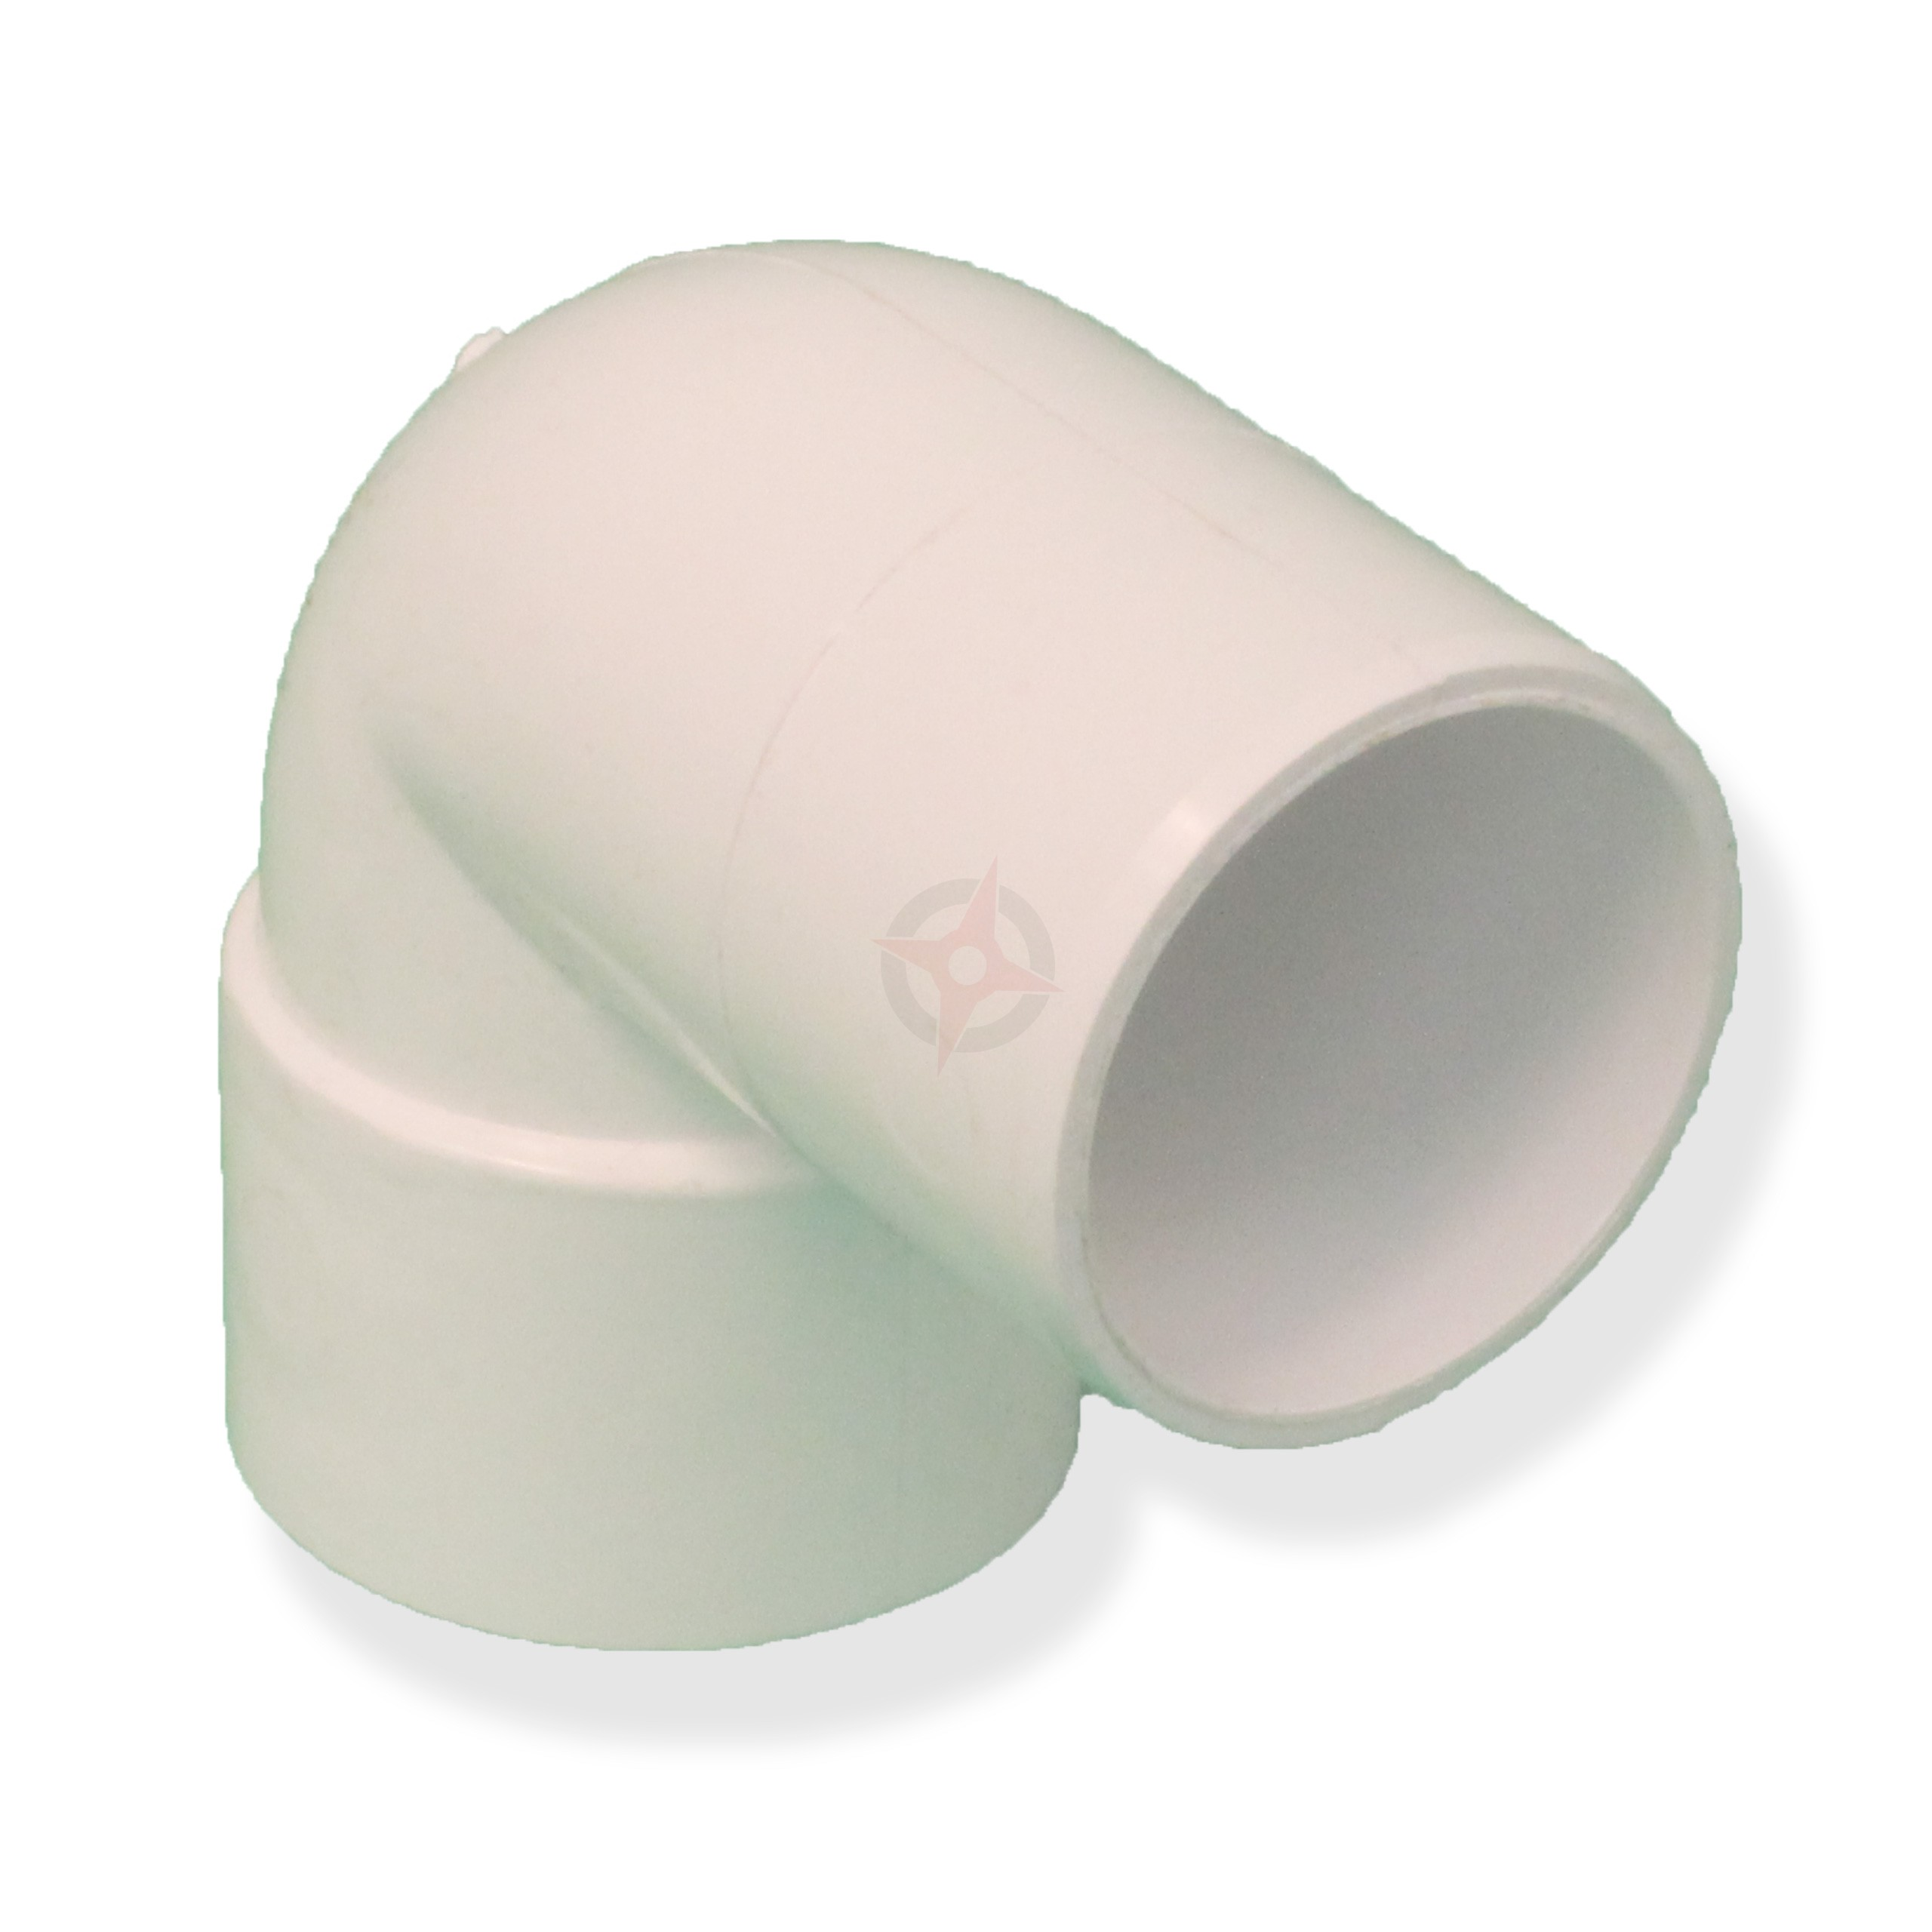 White 36mm Solvent Waste 90 Degree Spigot Bend